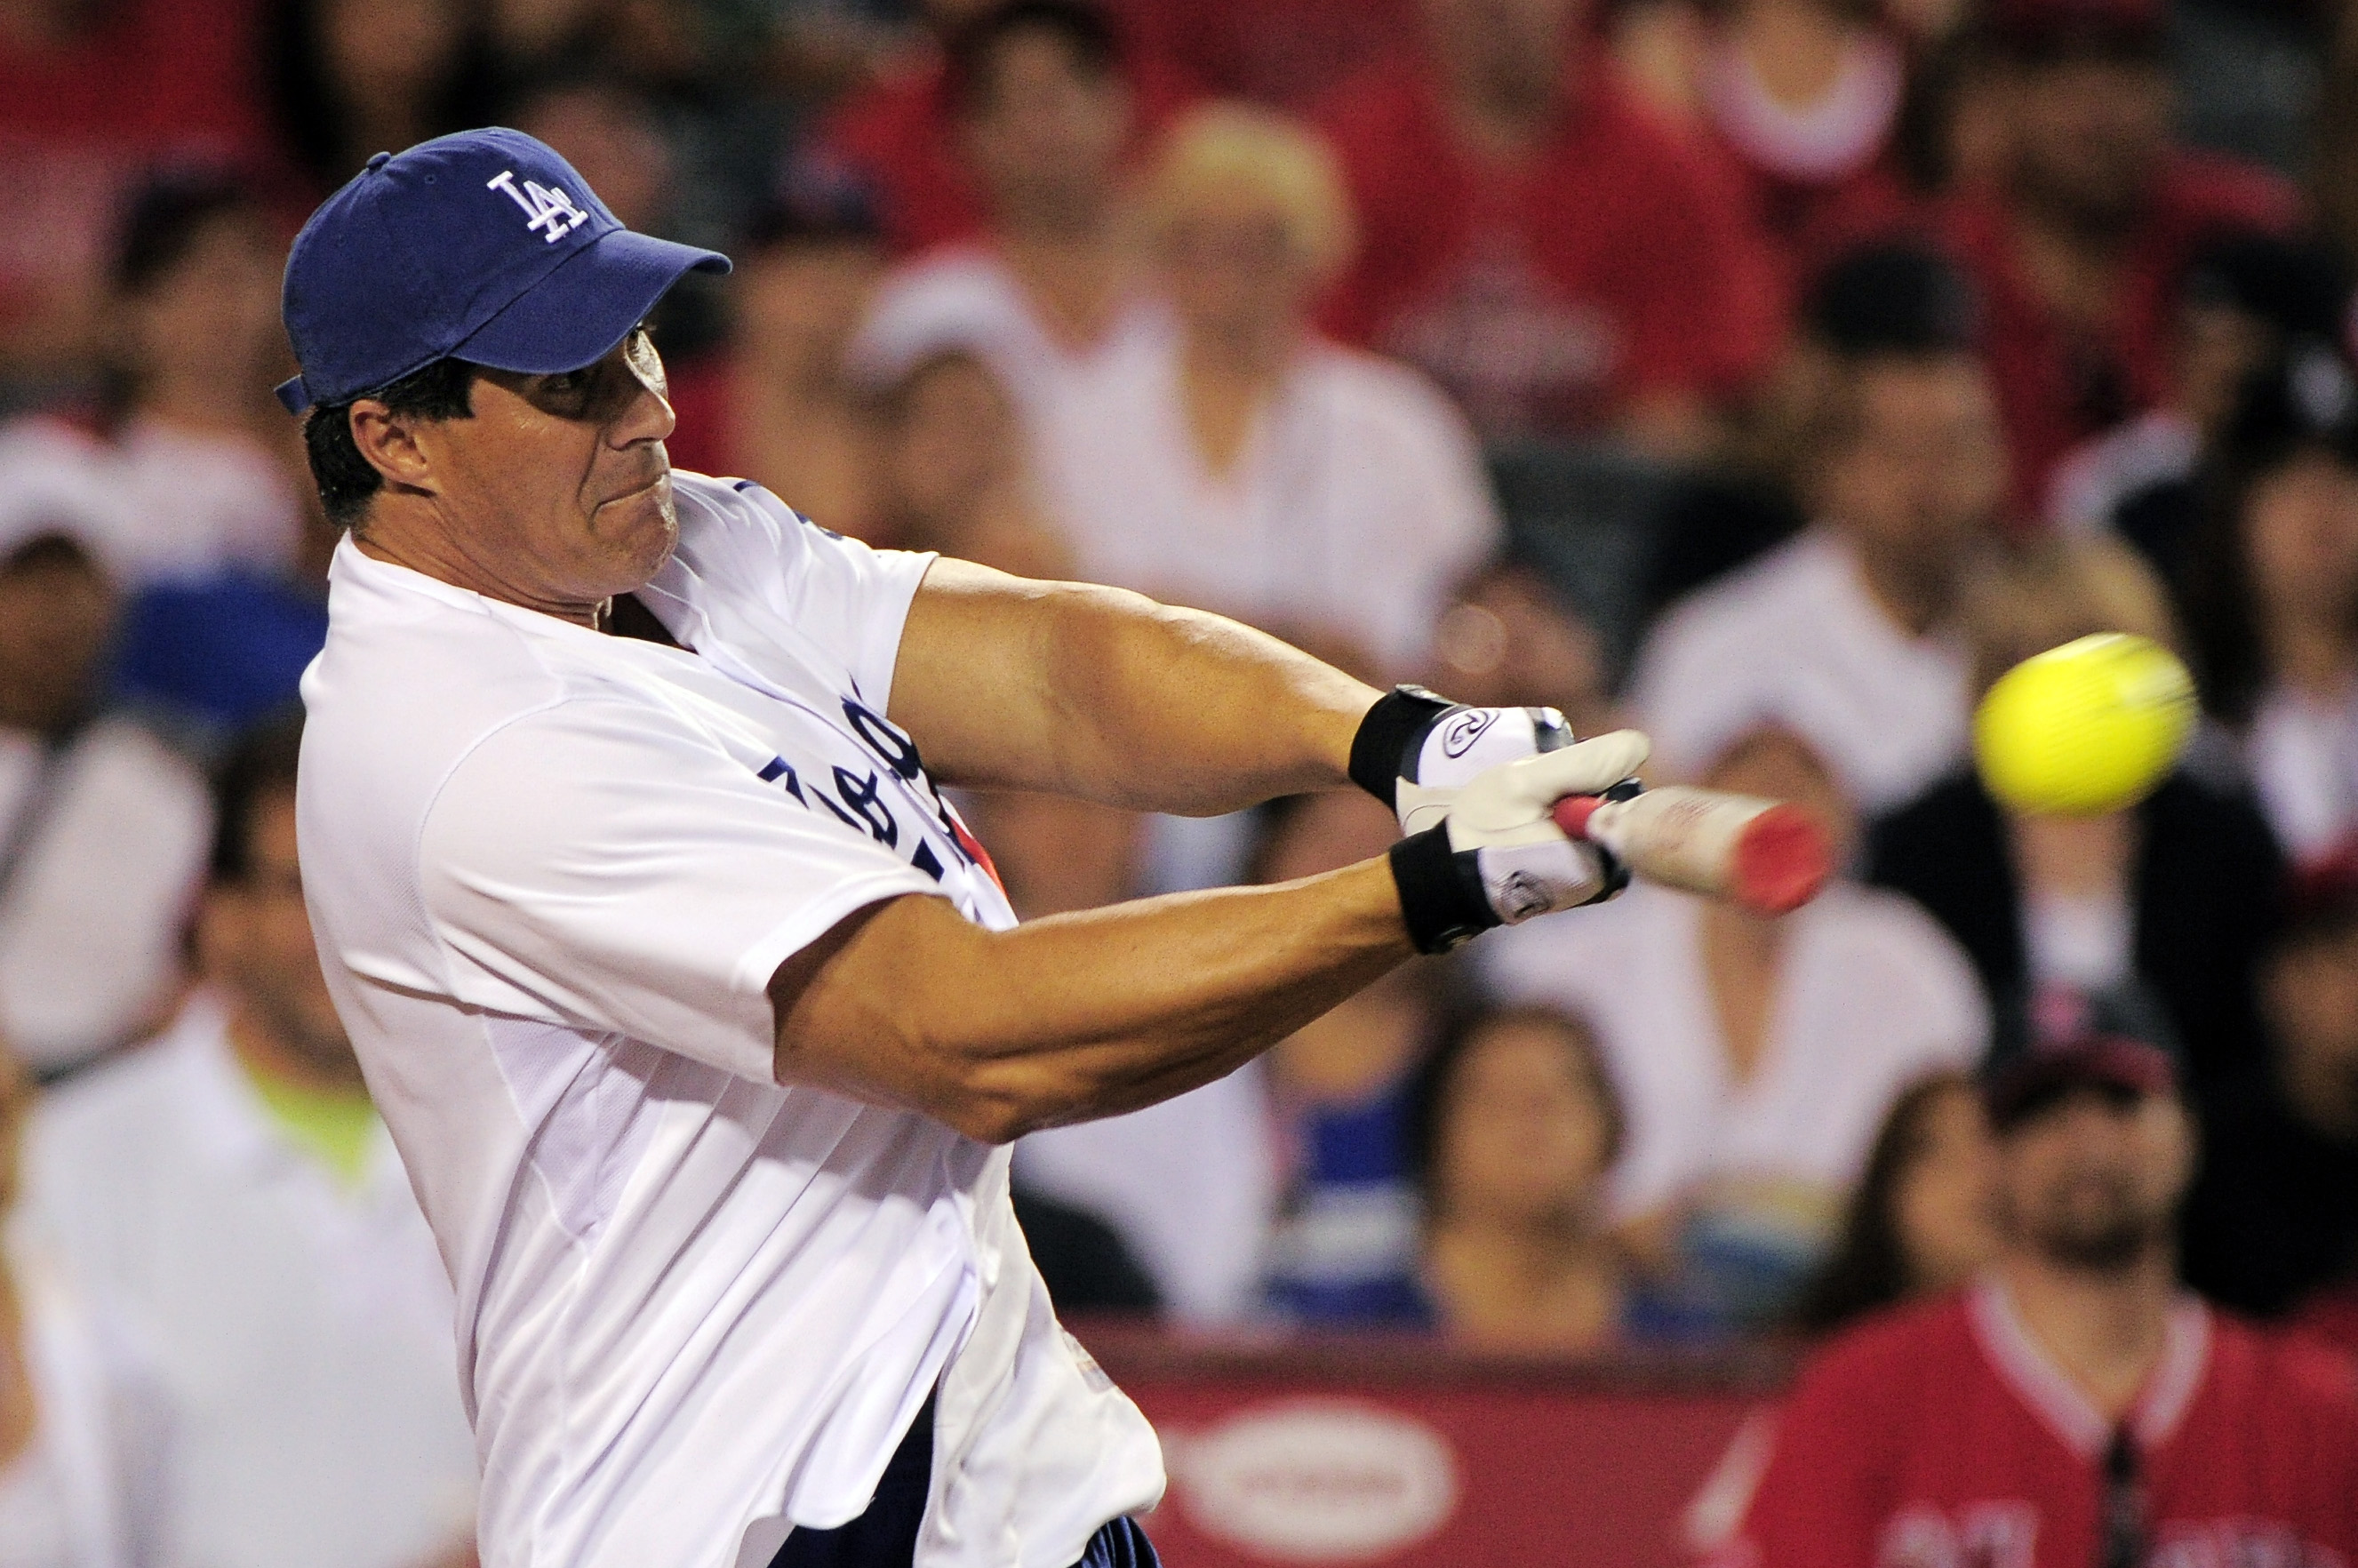 FILE - Former major leaguer Jose Canseco hits during a home run derby against former Los Angeles Angels' Tim Salmon, in Anaheim, Calif., July 3, 2011.